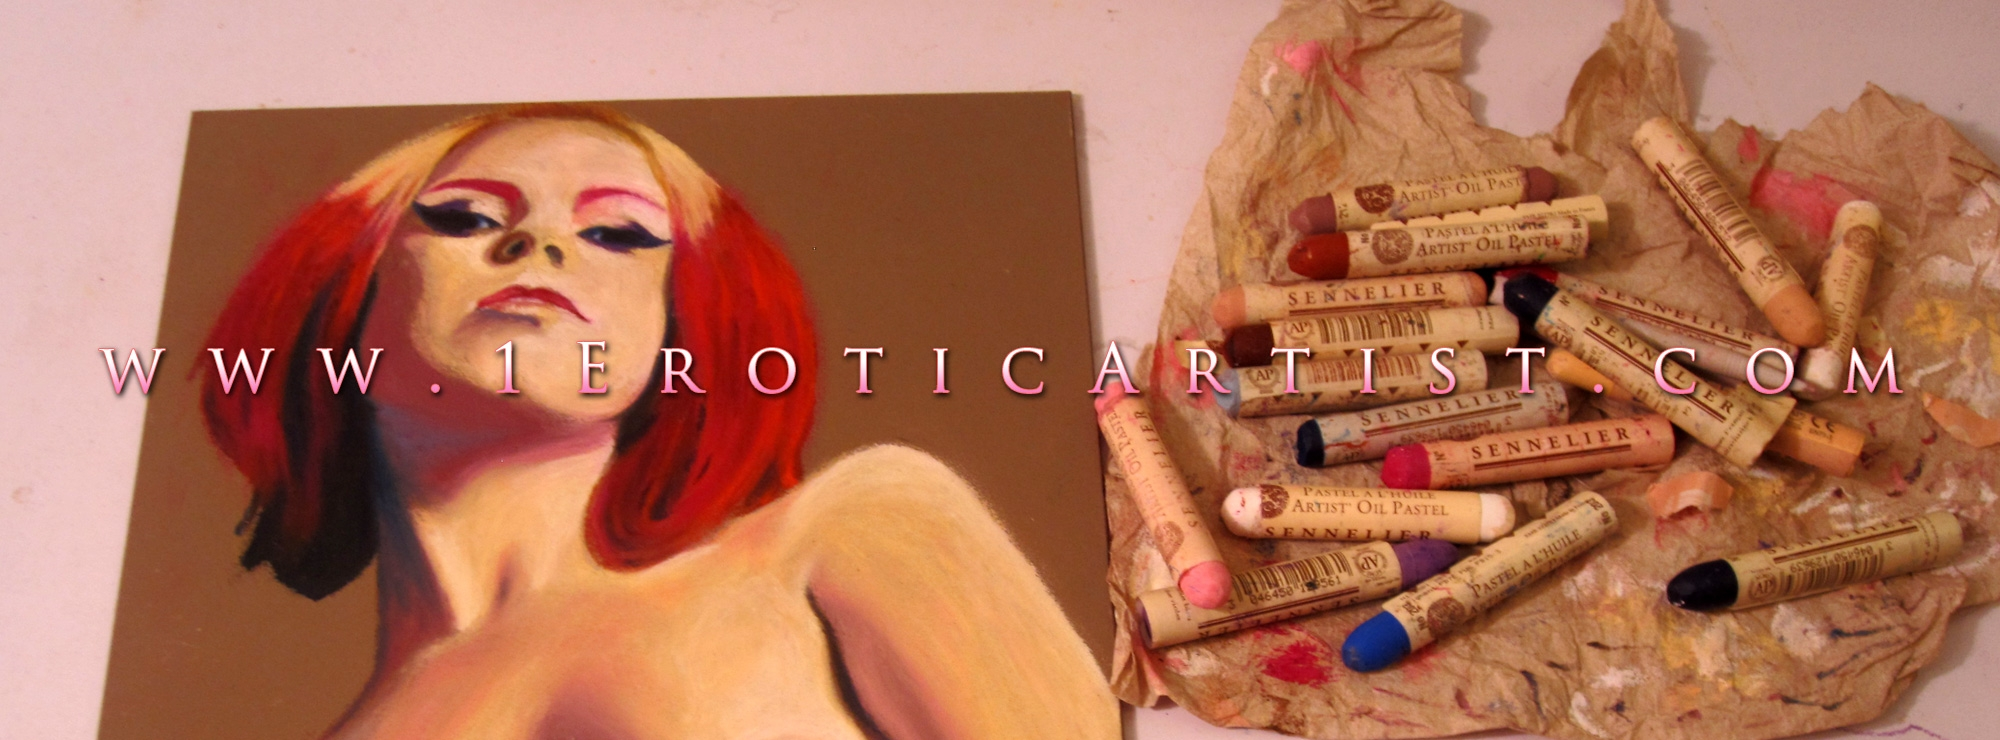 (@eroticartist) Cover Image